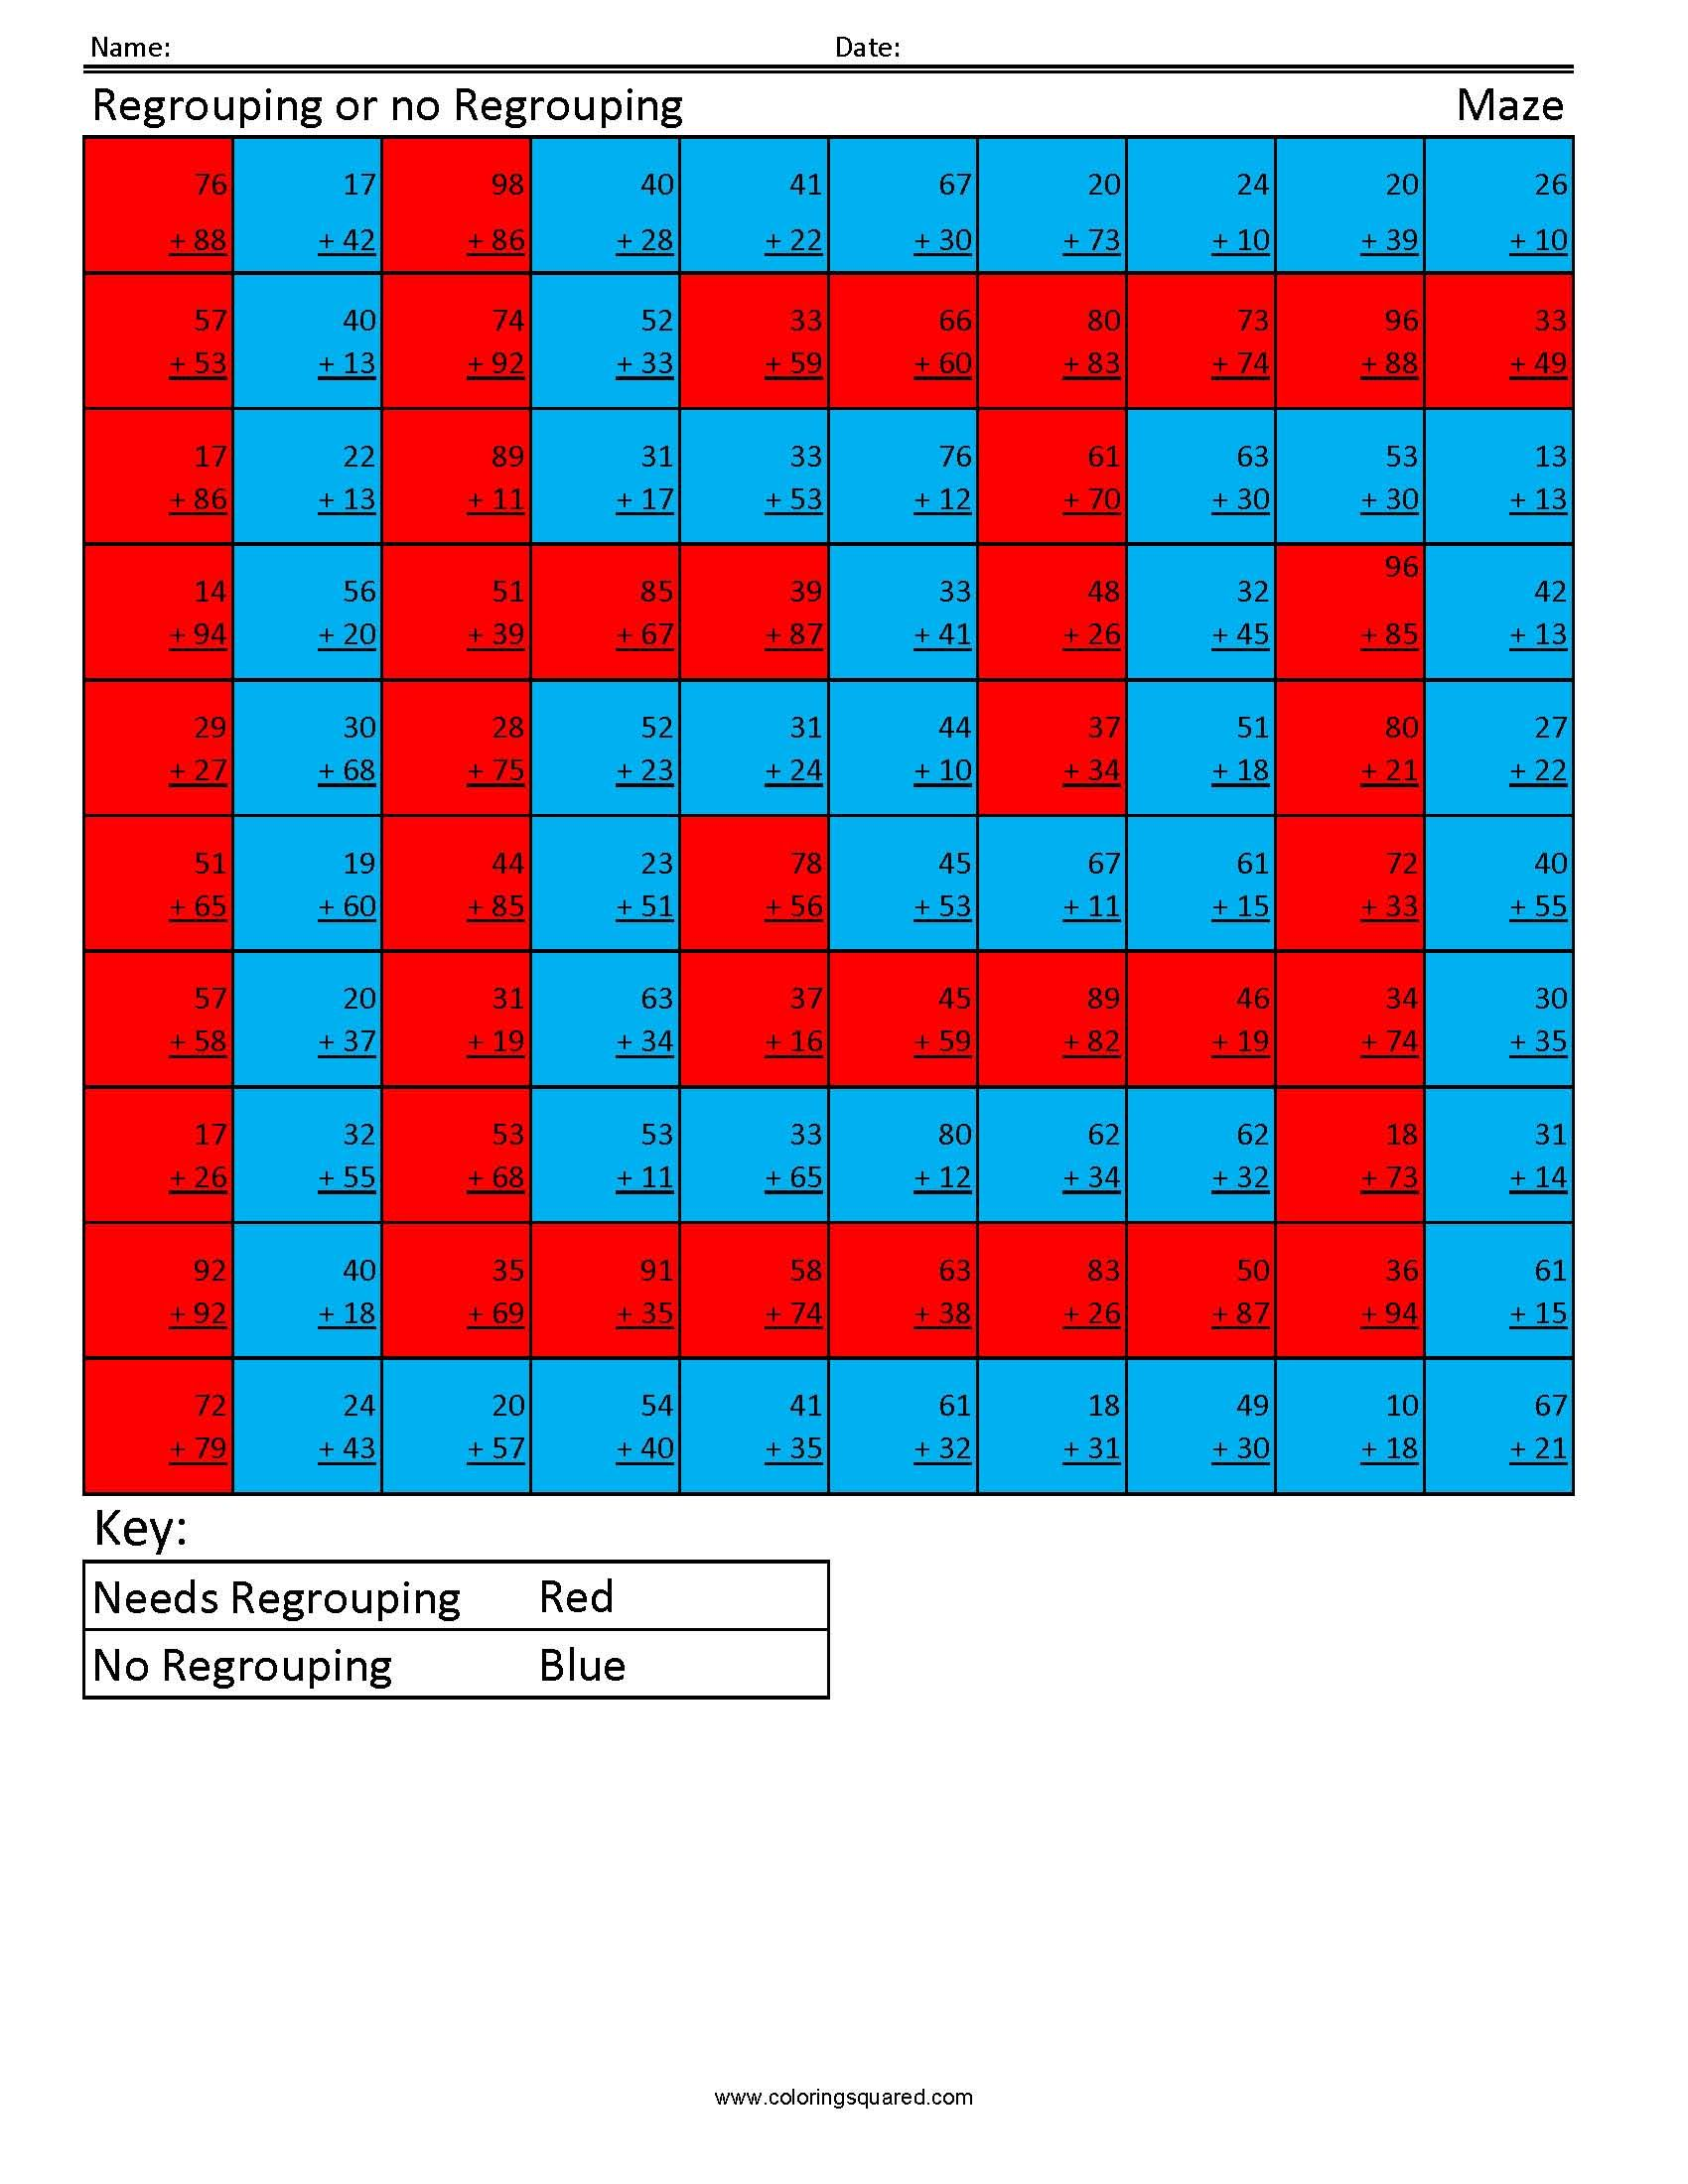 Addition Regrouping- Maze - Coloring Squared   anika   Pinterest ...